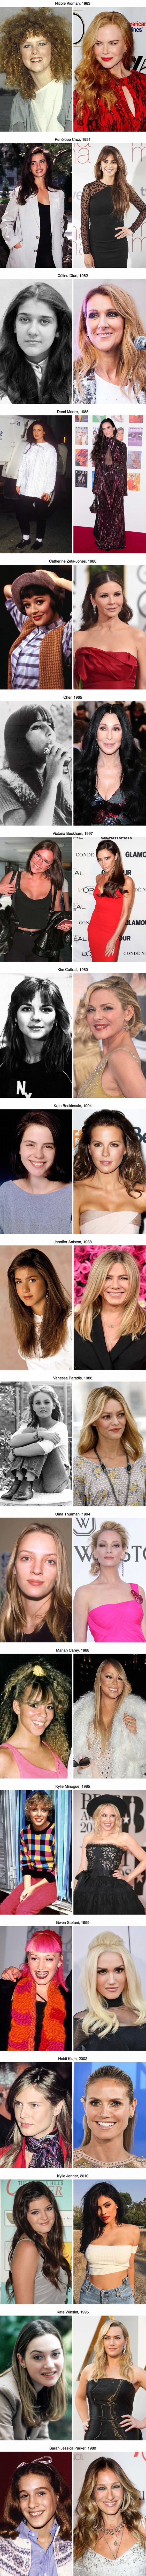 Hollywood beauties when they were younger